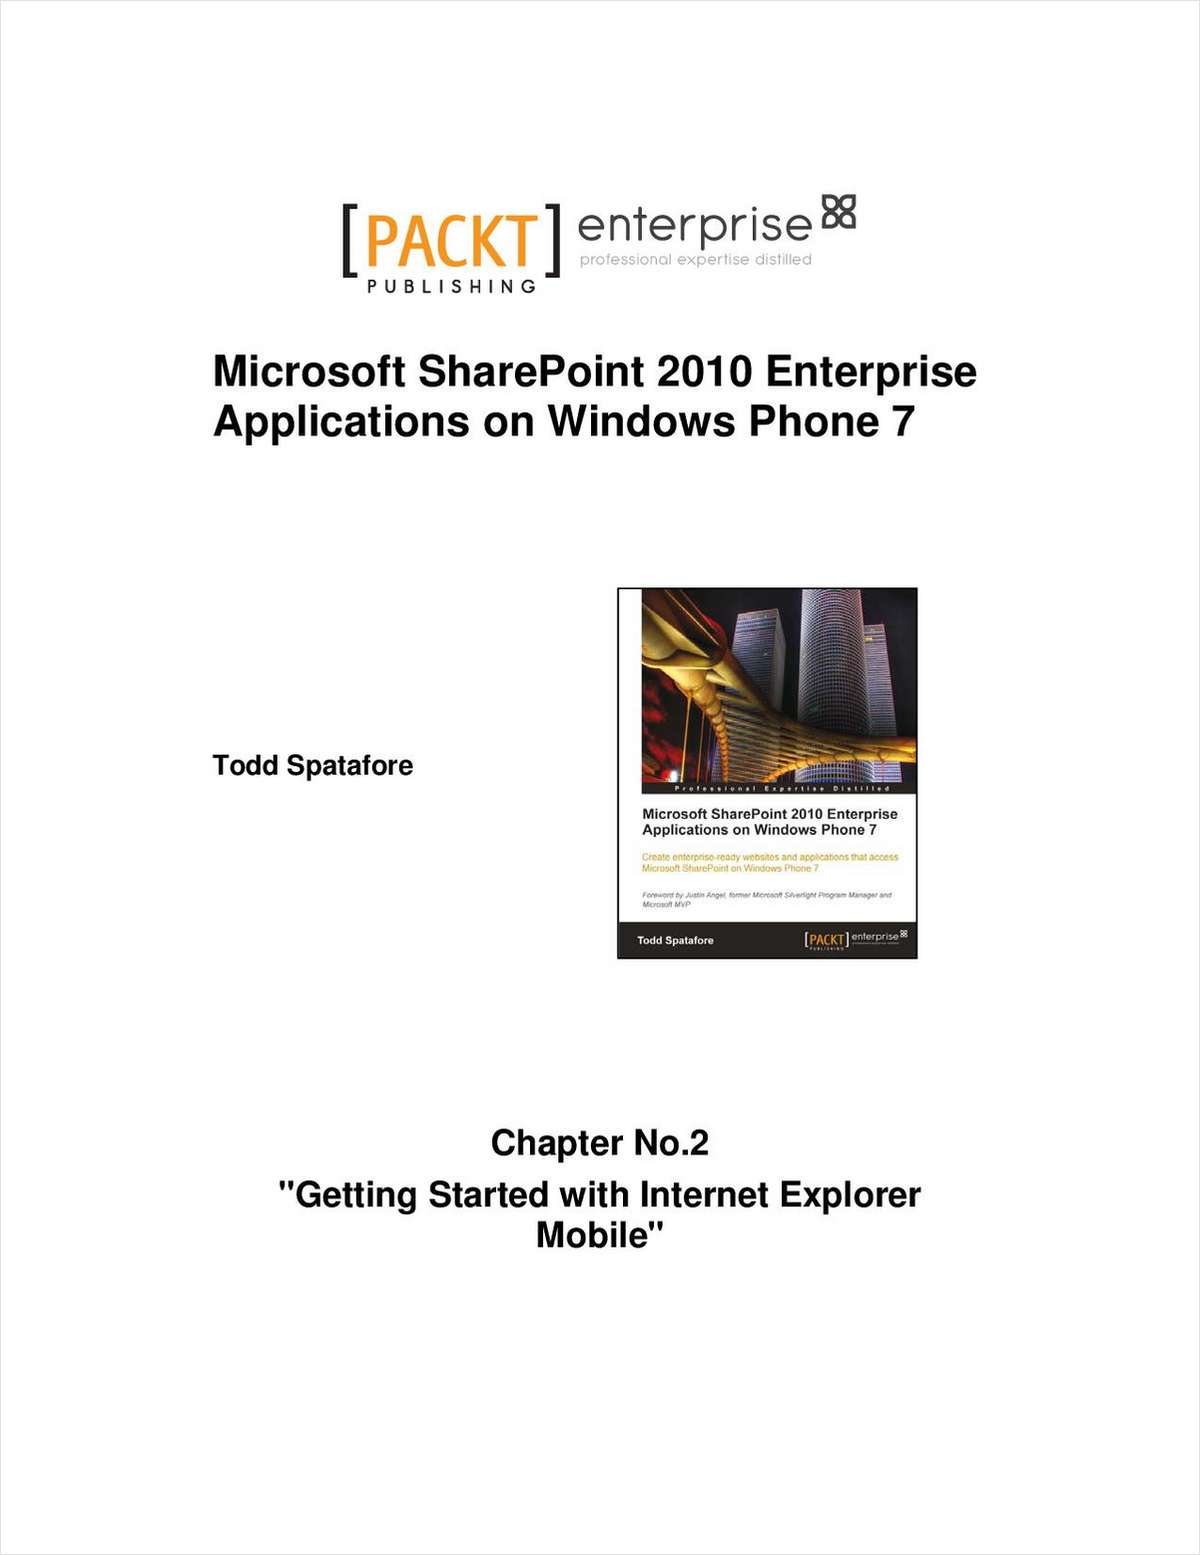 Getting Started with Internet Explorer Mobile